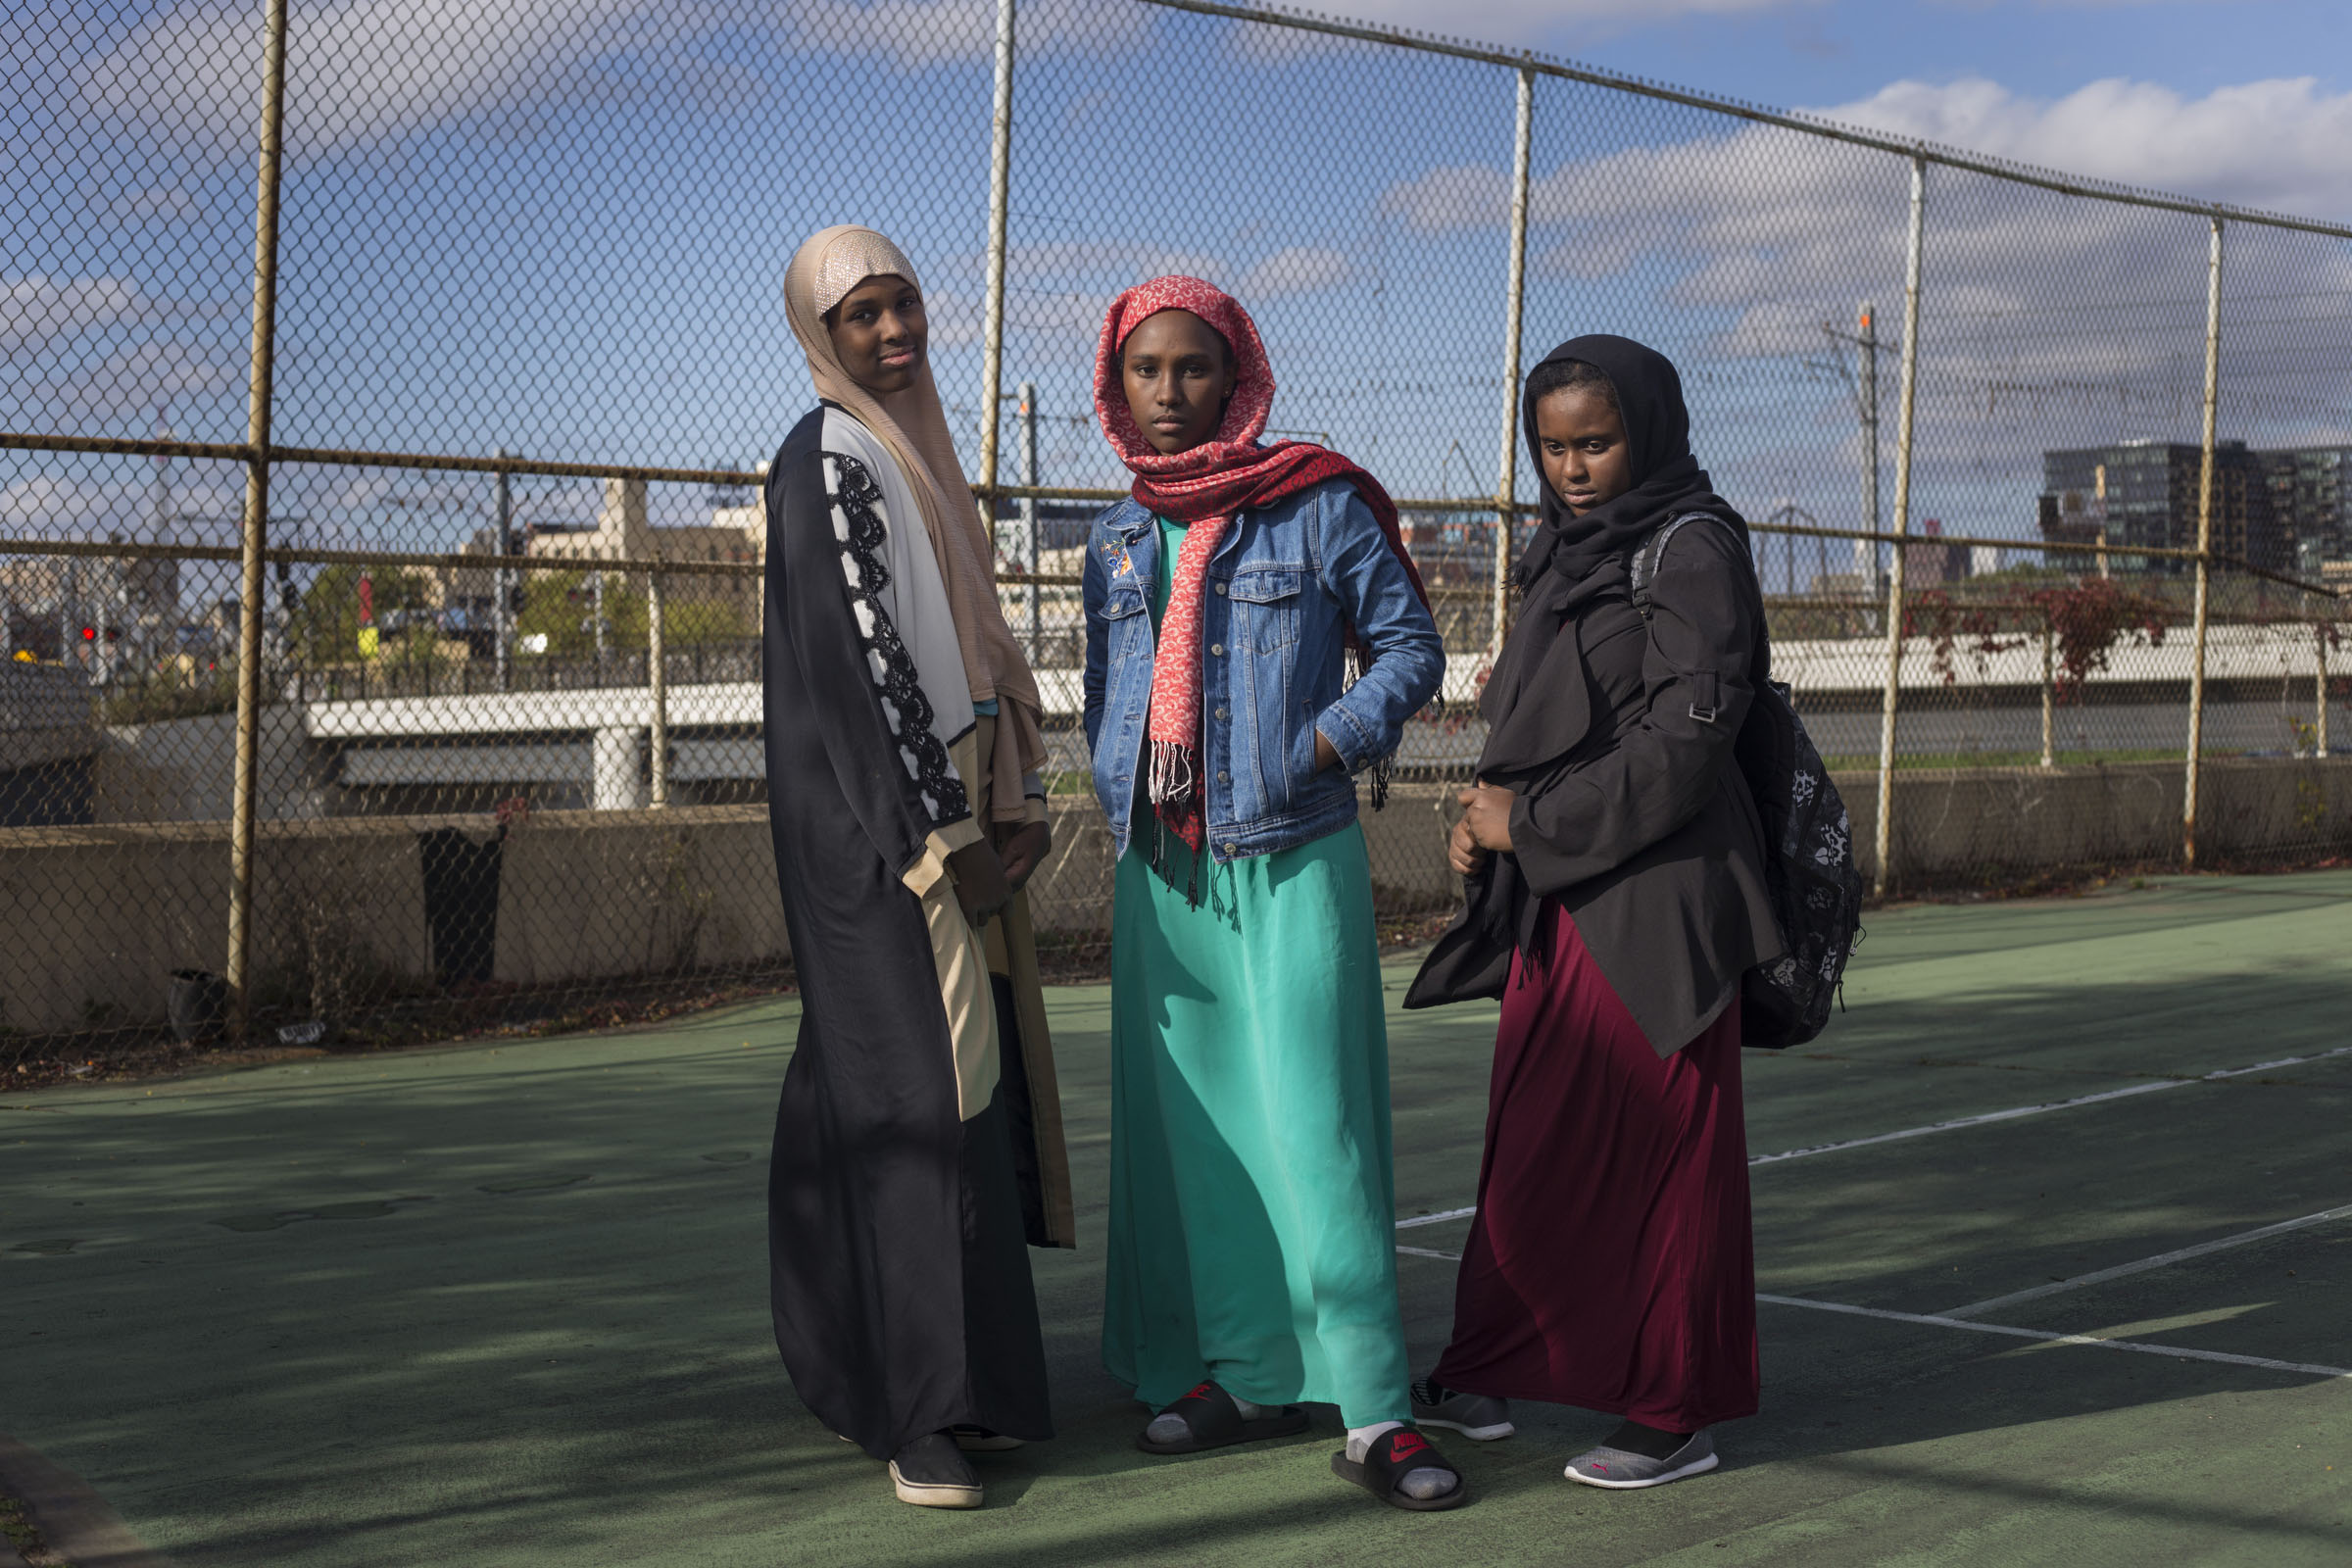 From left to right, Maryam Warsame, 13, Nada Tohu, 13, and Ikran Ibrahim, 12, outside of the Brian Coyle center in the Cedar-Riverside neighborhood of Minneapolis, Minn., on Thursday, October 12, 2017. (Photo by Brittany Greeson)